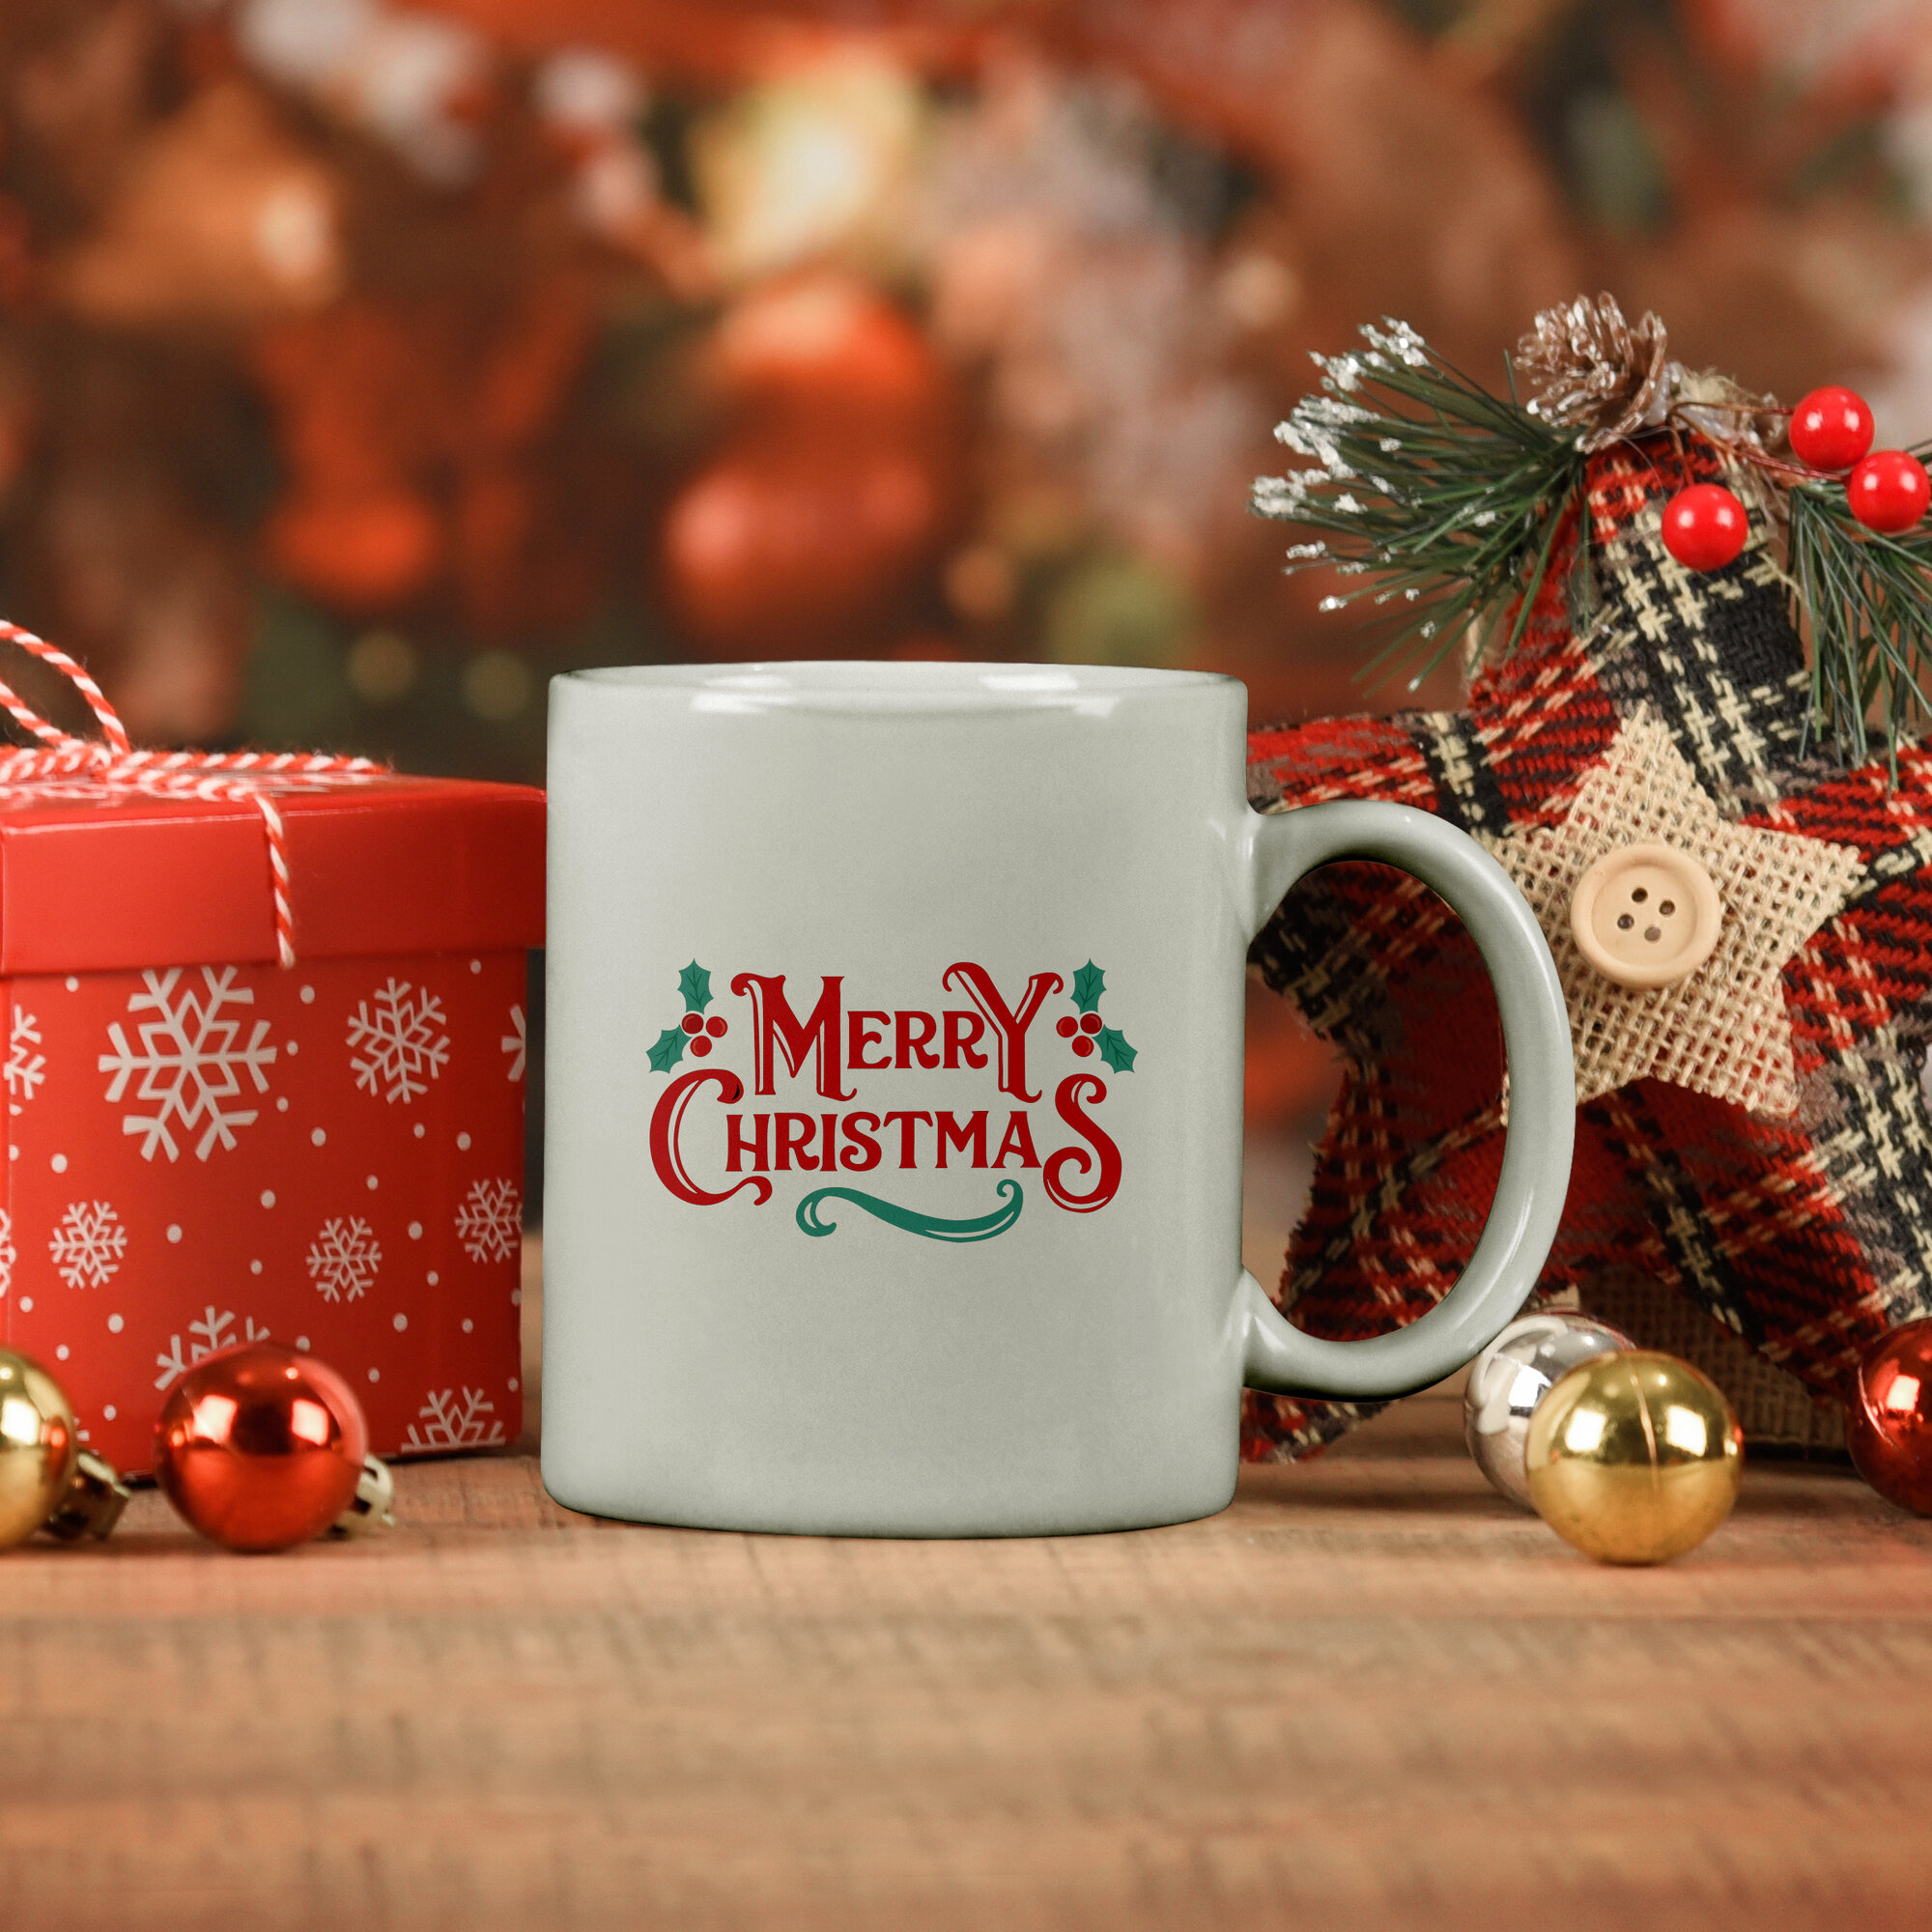 https://www.print2go.com/images/products_gallery_images/mug_2020.jpg